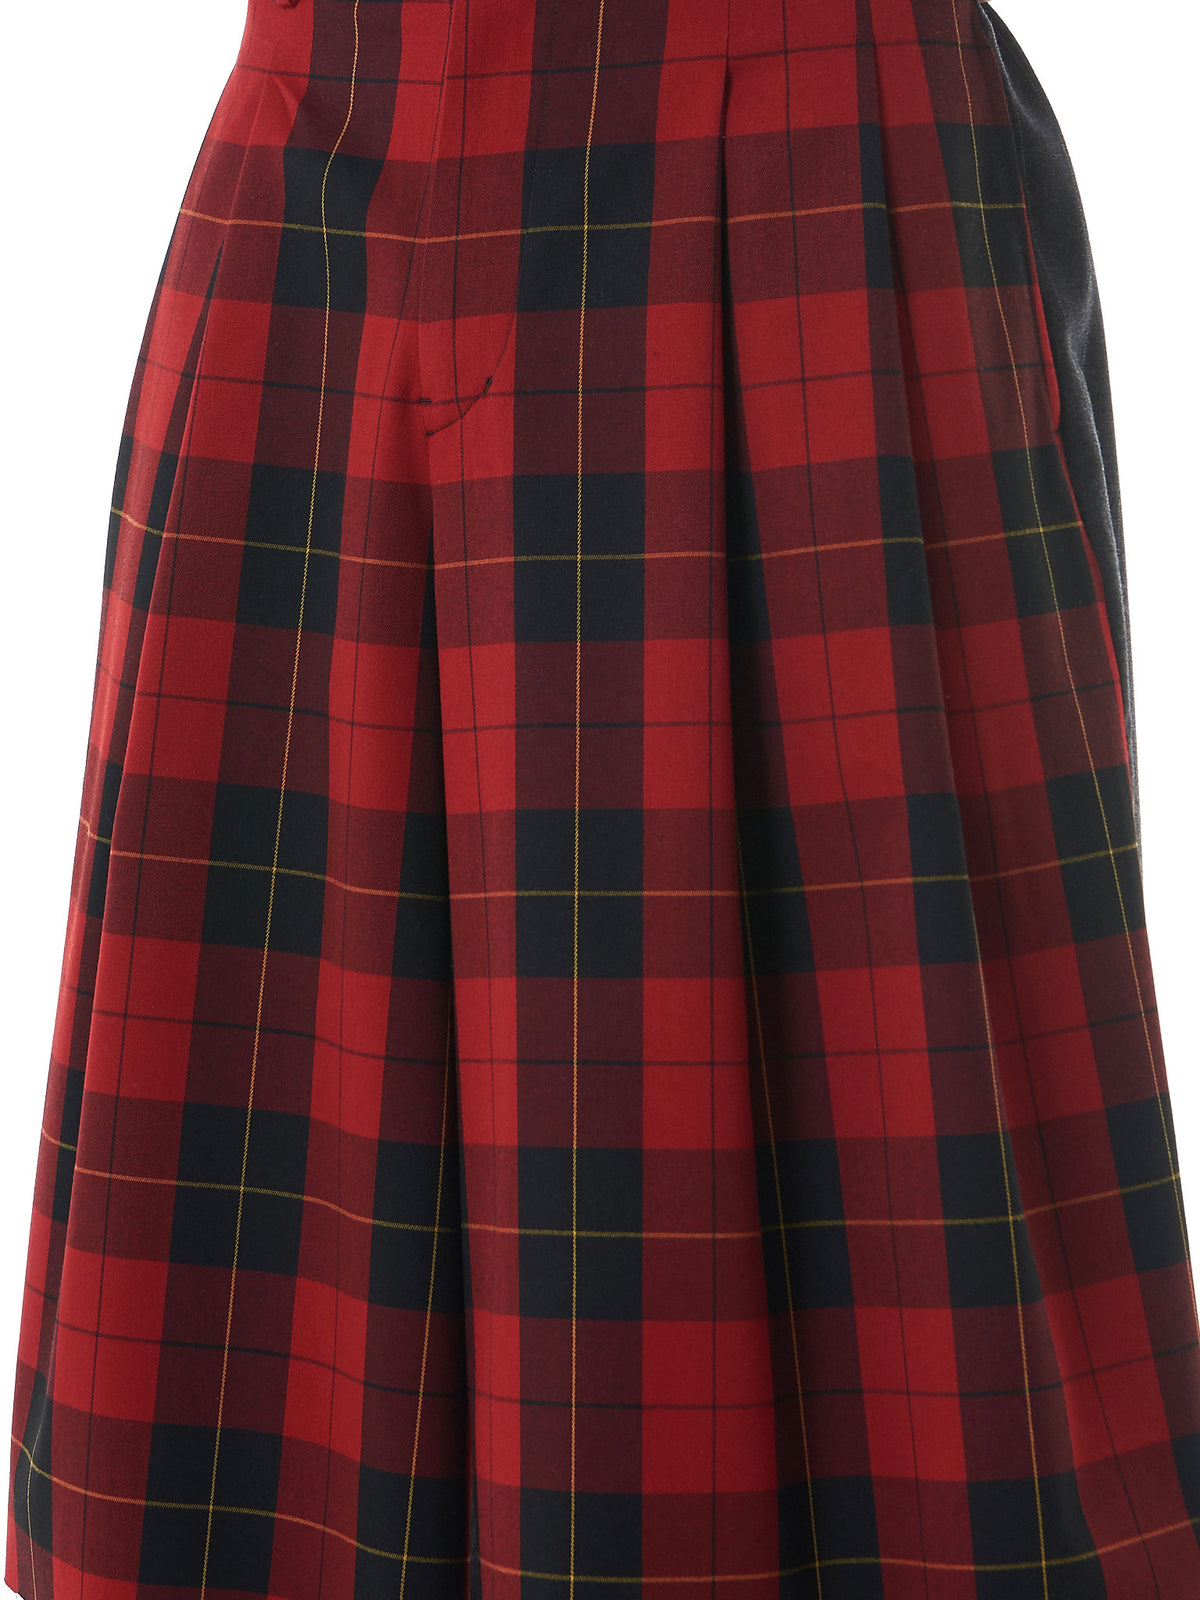 Checkered Skirt-Shorts (17TMP12004-RED-CHARCOAL) - H. Lorenzo